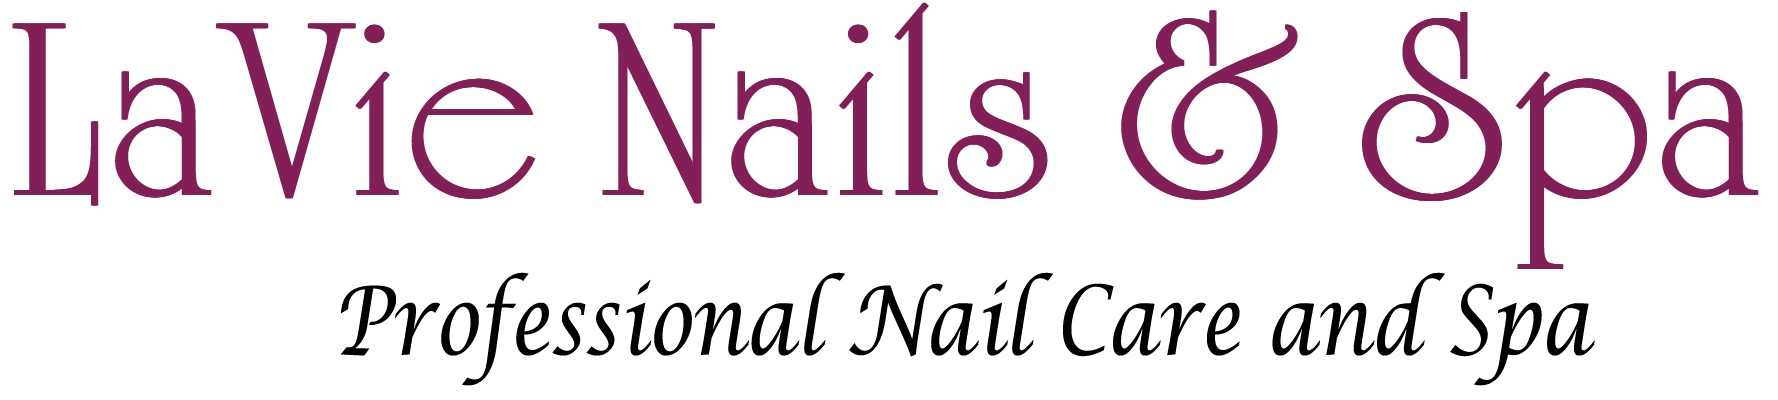 Nail salon 29212 | Keep calm & let your nails Sparkle | LaVie Nails and Spa | Nail salon Columbia, SC 29212